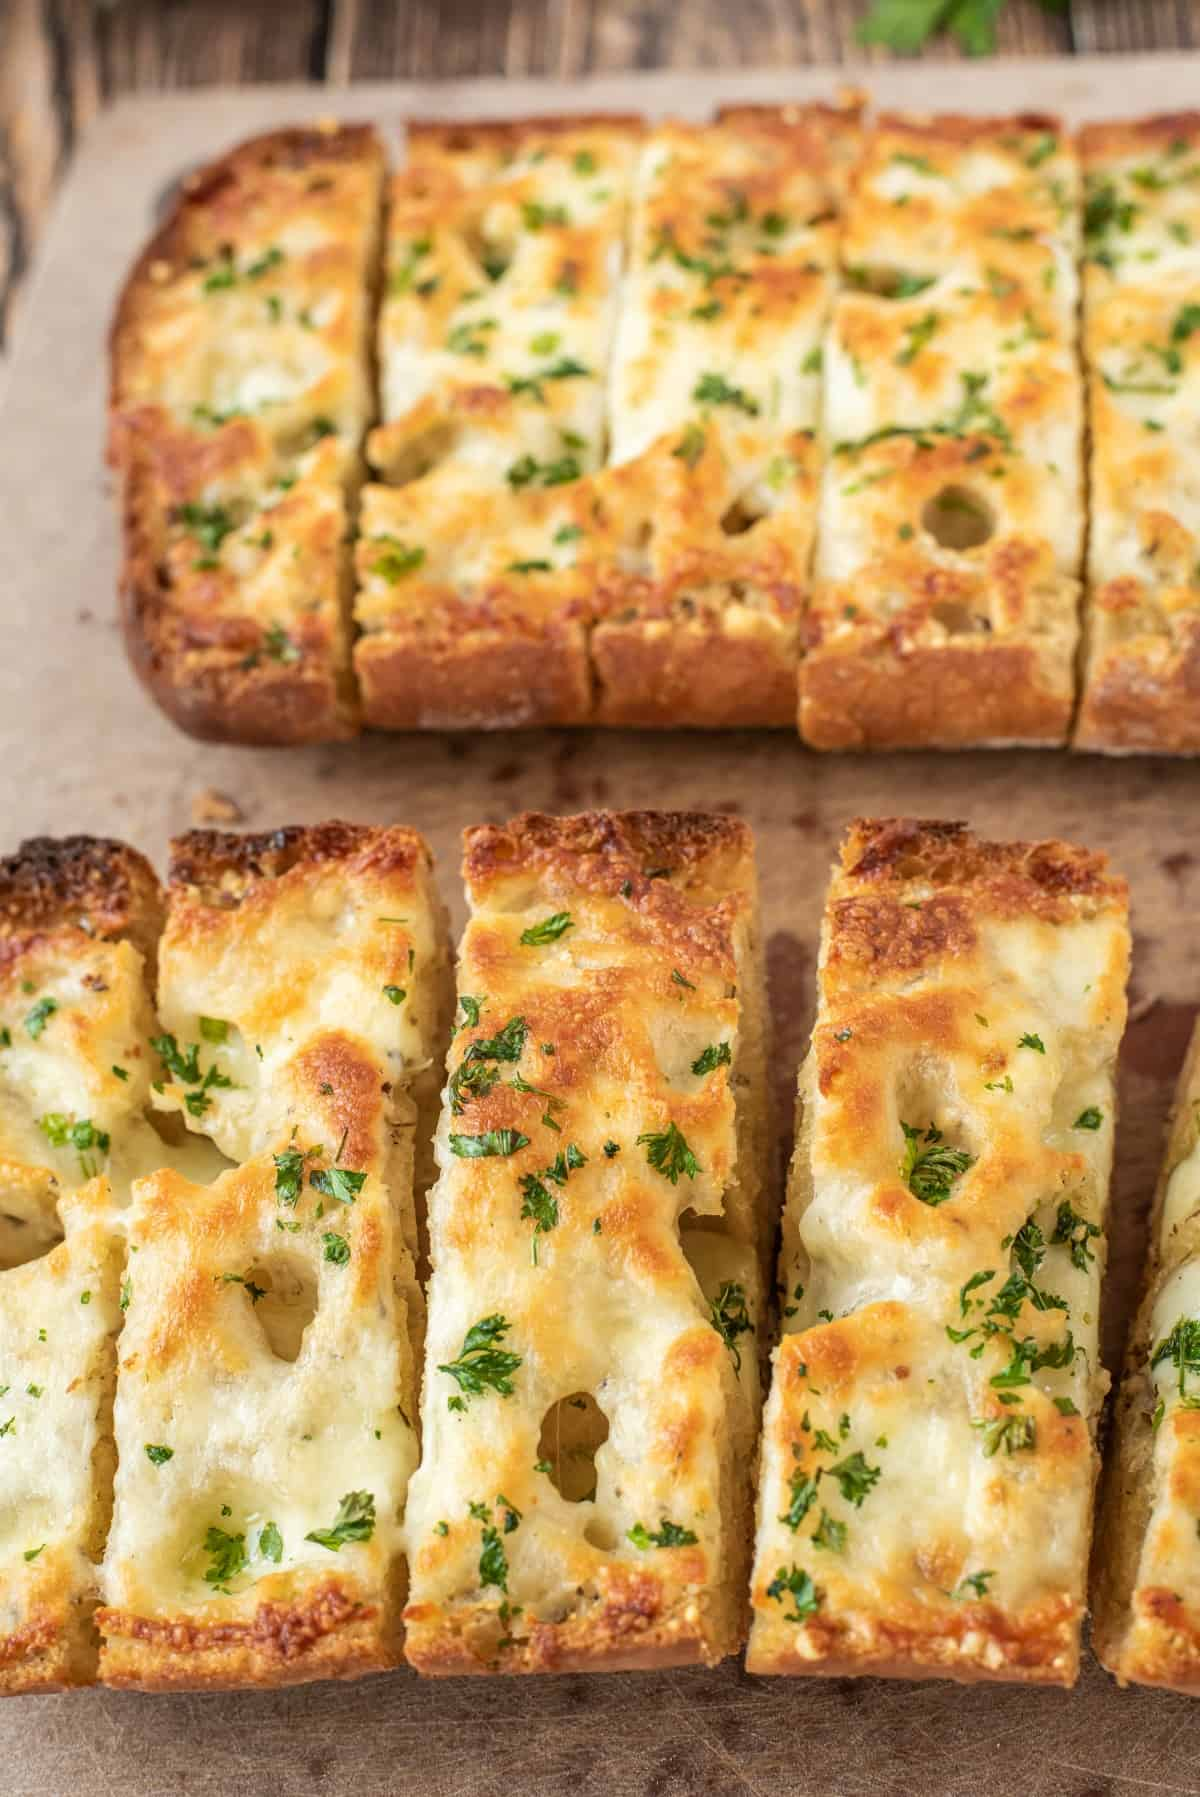 Cheesy garlic bread on parchment paper, sliced.